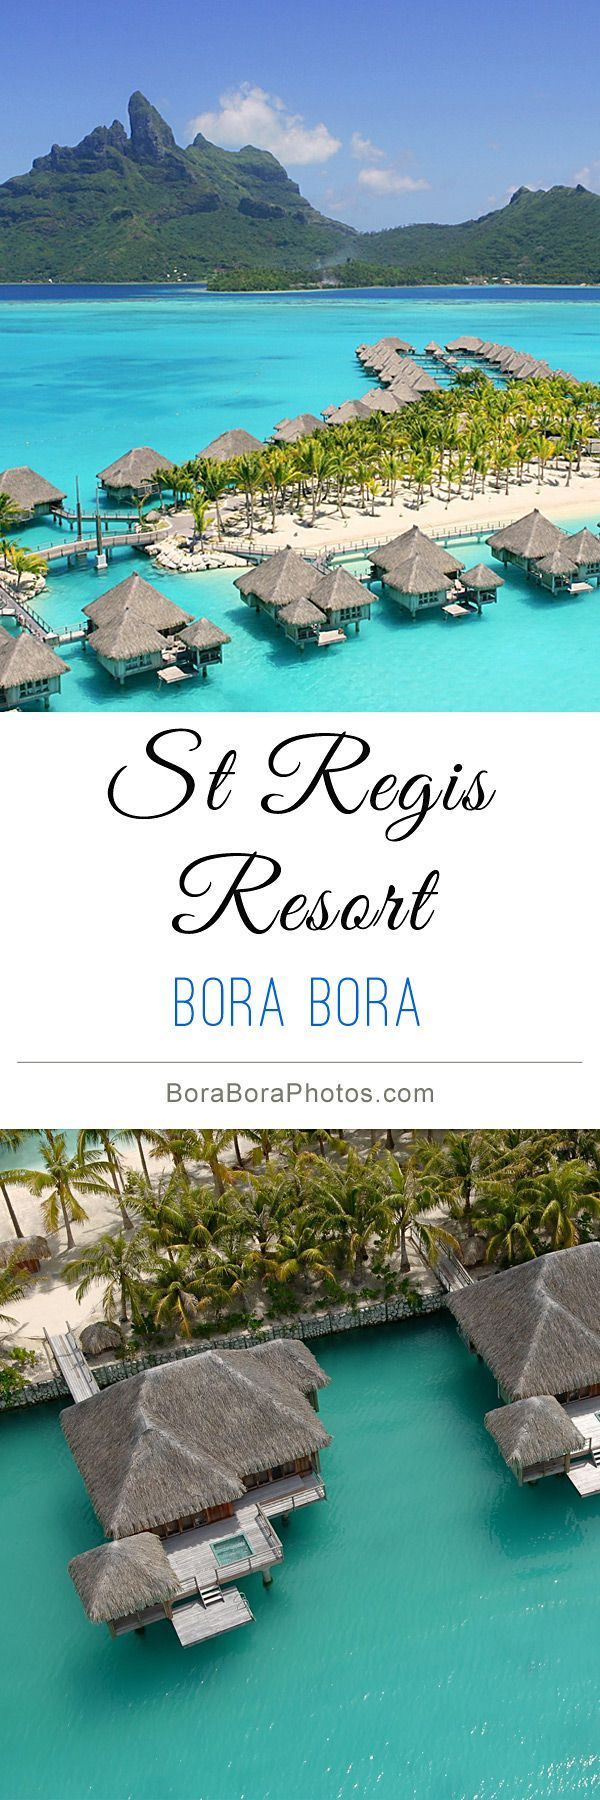 The prestigious st regis resort and spa in part of a luxury collection of hotels in french polynesia